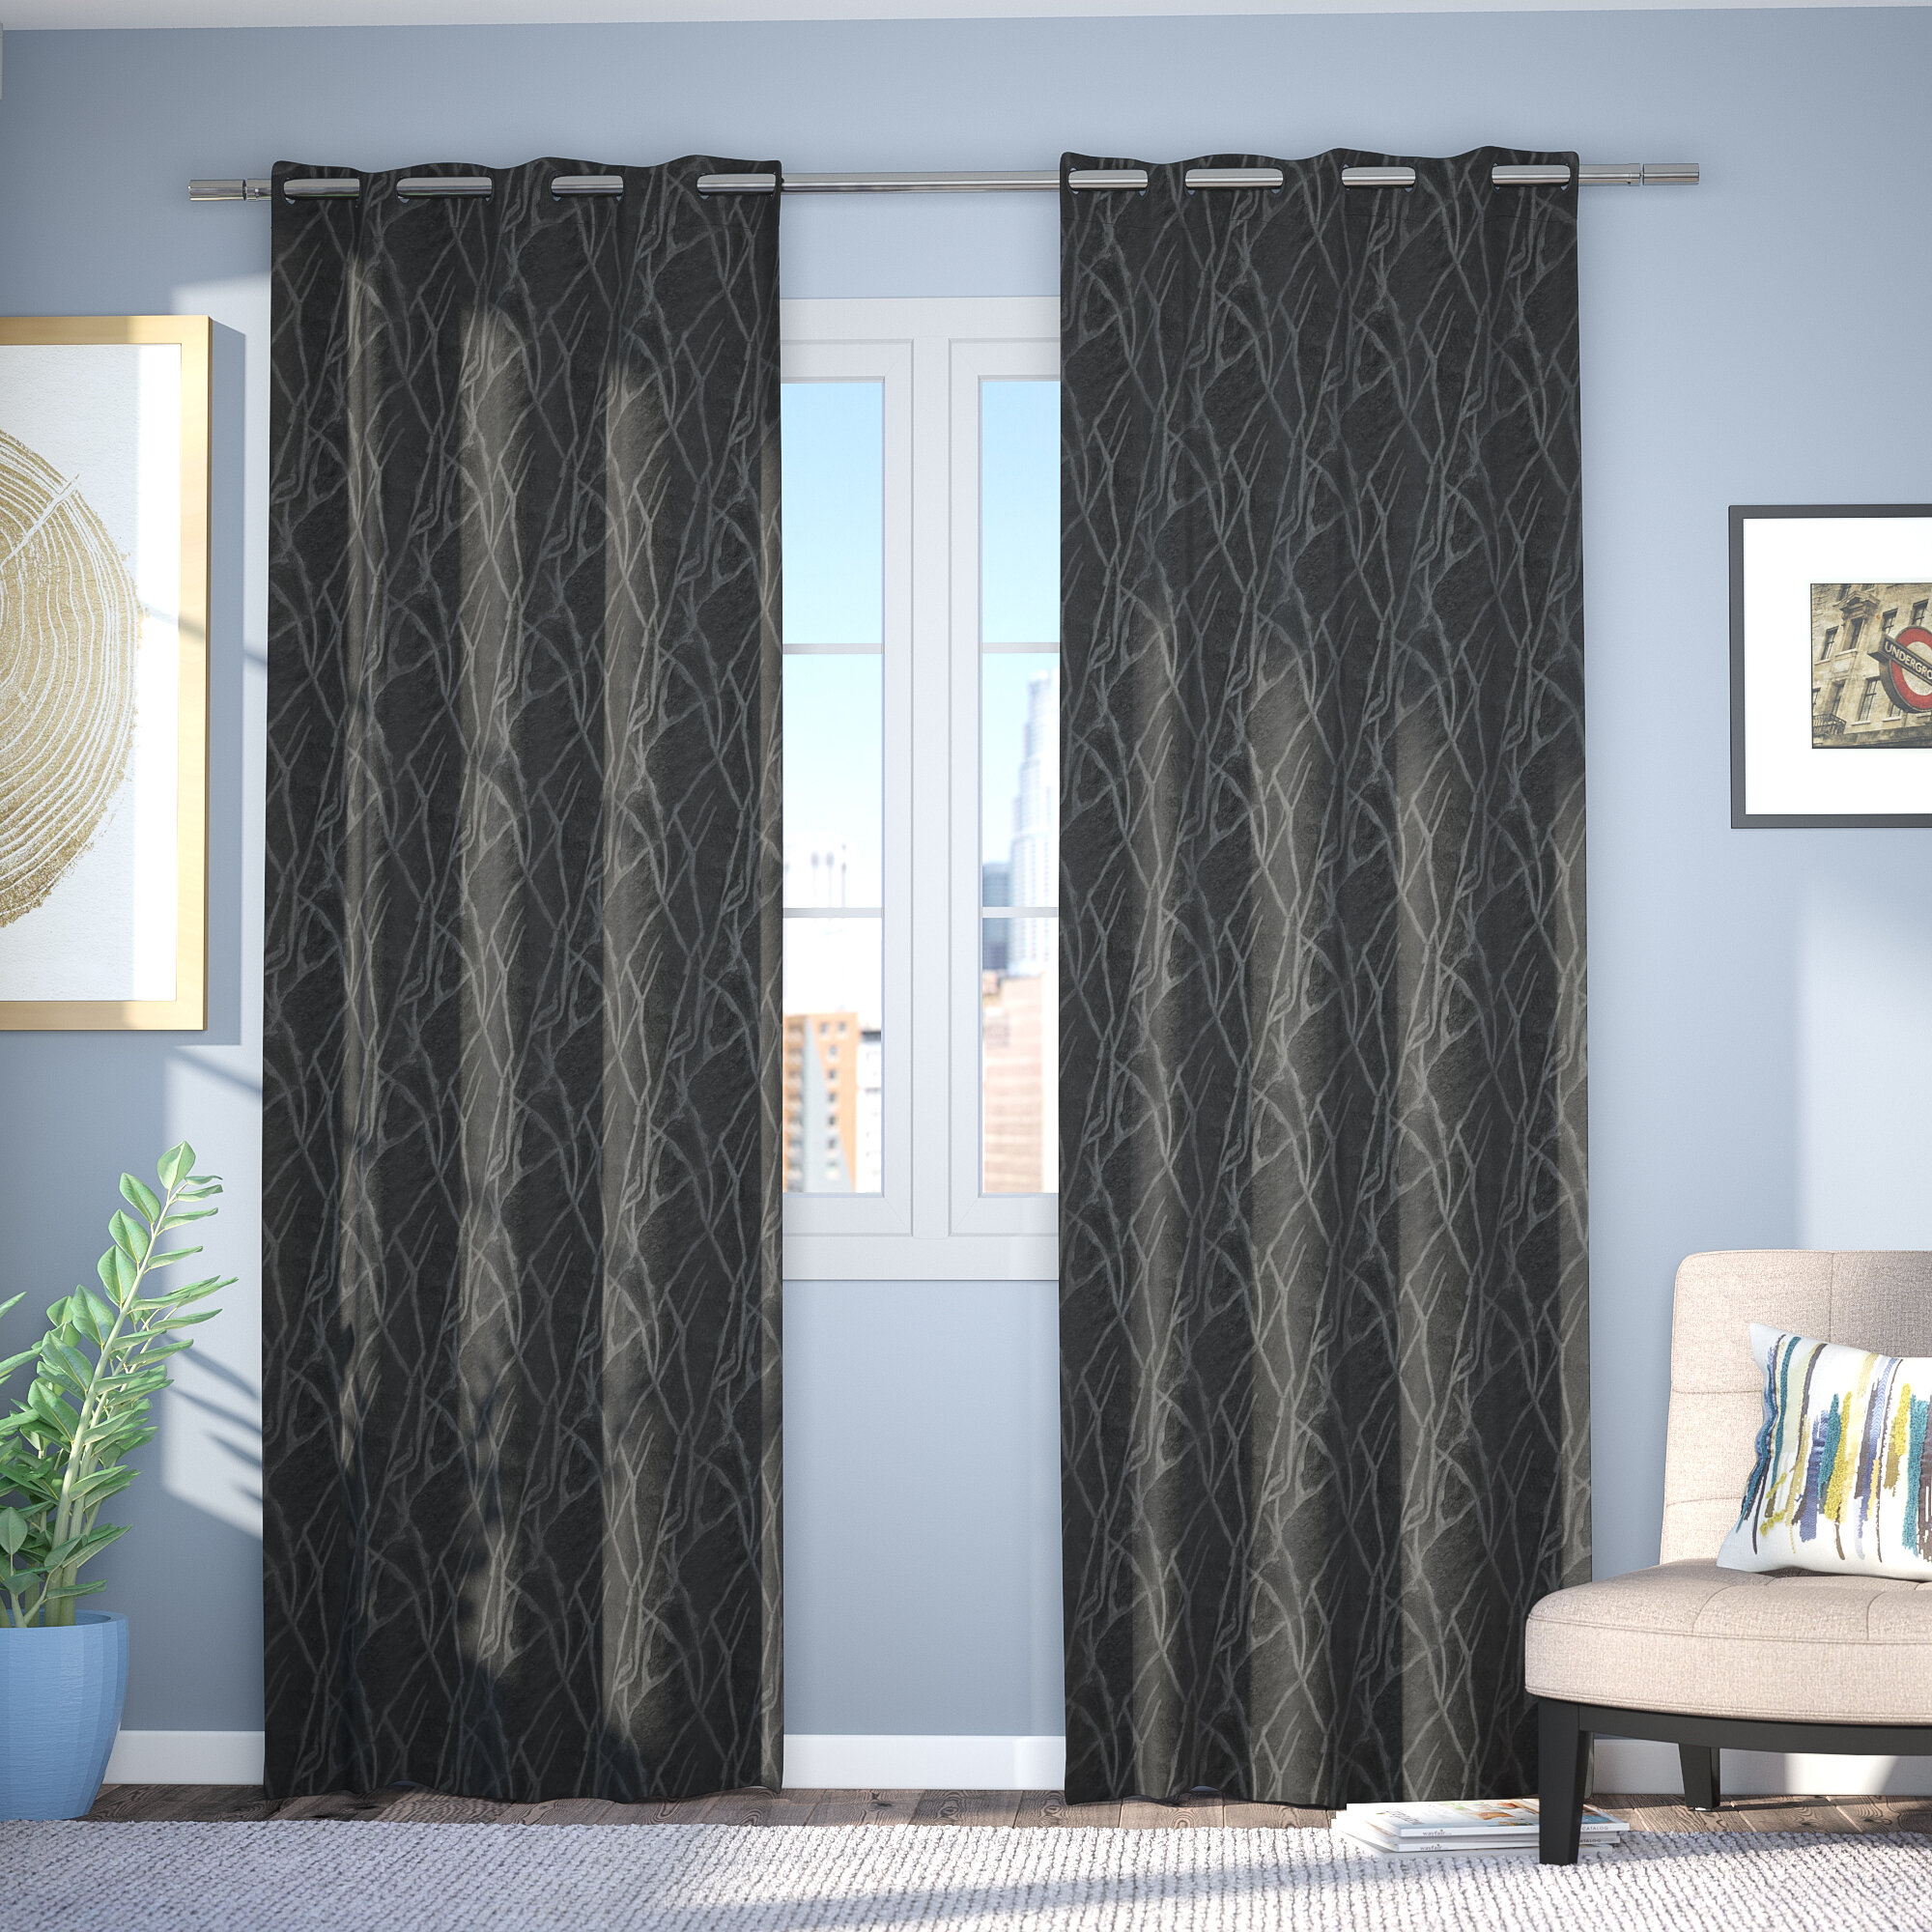 Waut Floral Room Darkening Thermal Grommet Curtain Panels Pertaining To Twig Insulated Blackout Curtain Panel Pairs With Grommet Top (View 13 of 30)